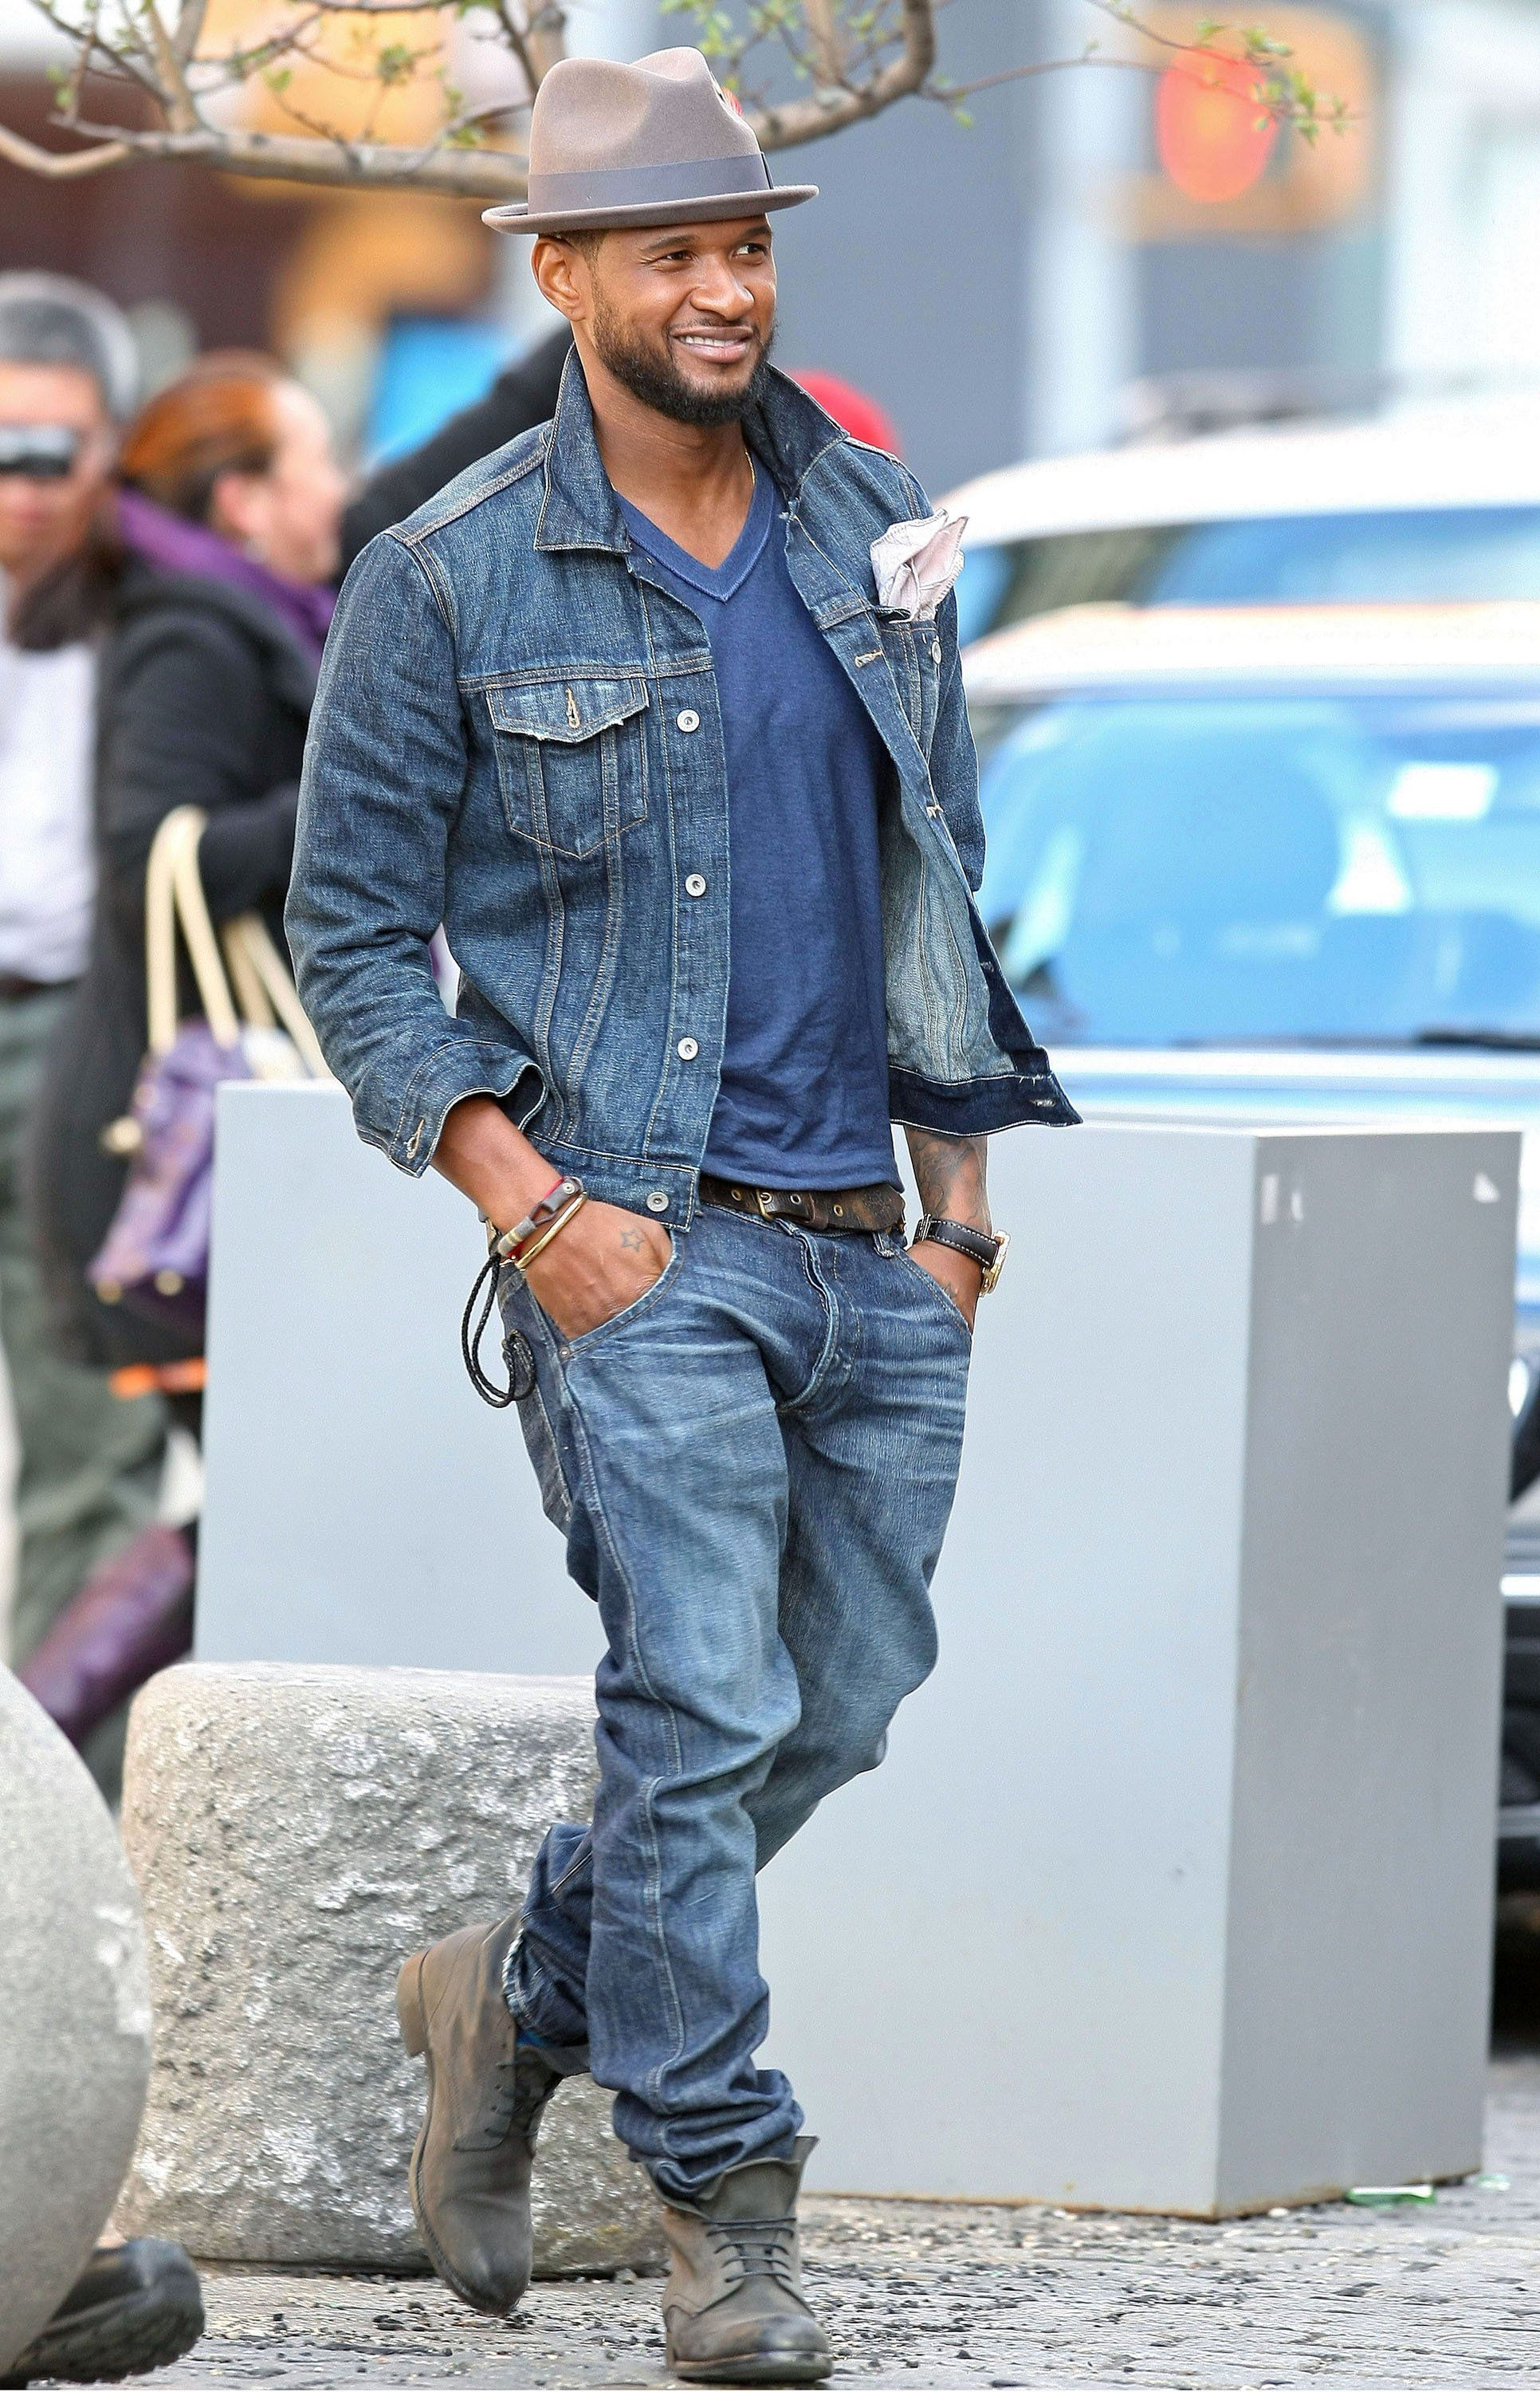 d5f9aba1a Usher Does the Denim on Denim Look With Ease | Easy | Denim jacket ...